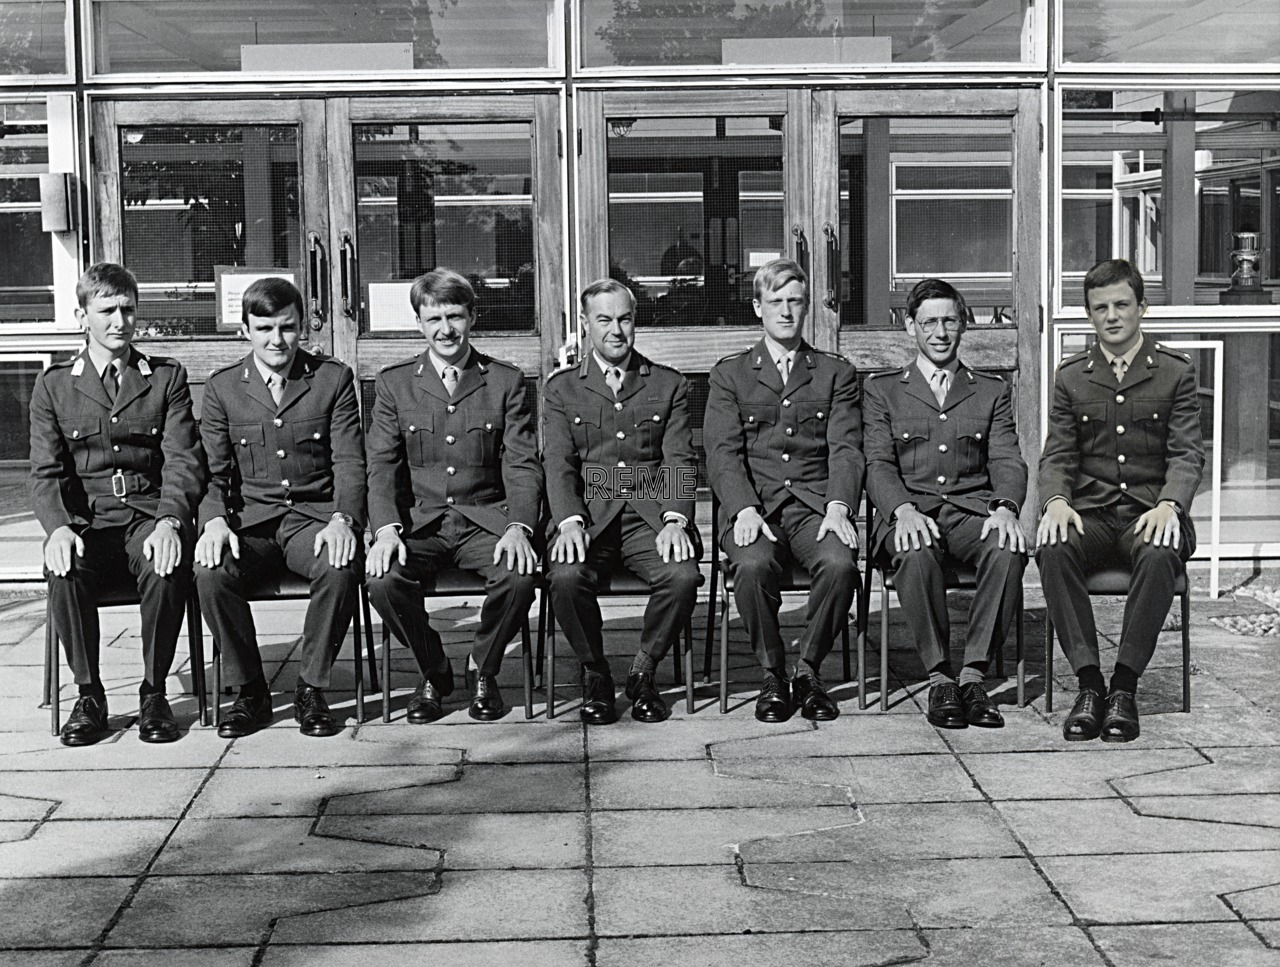 No 79 Regular Young Officers' Course, REME Officers' School, 1983